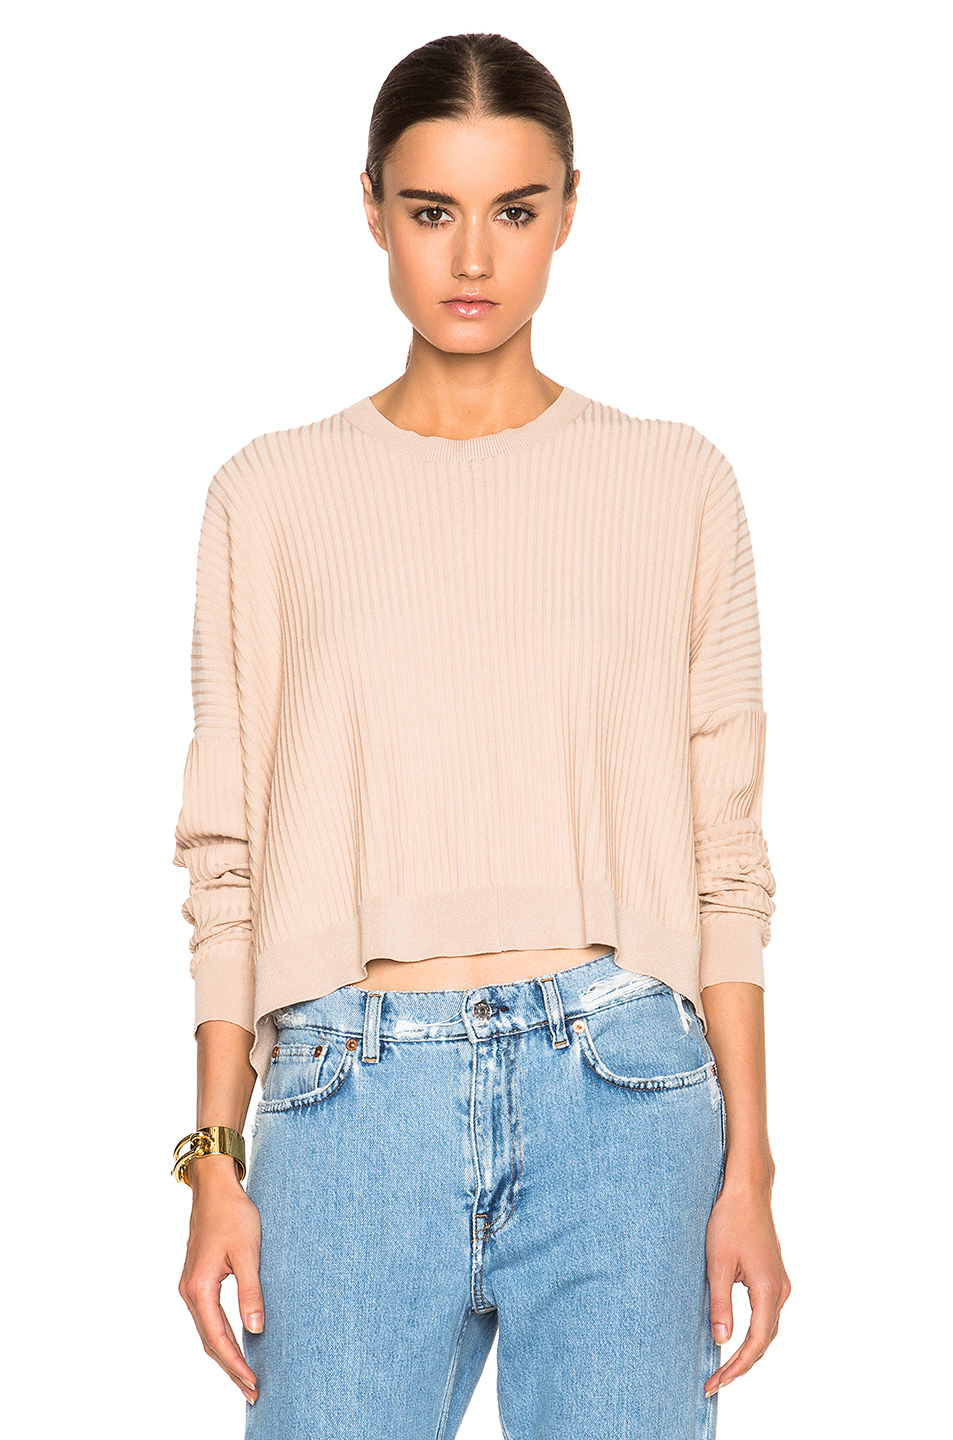 Acne studios Issy Rib Sweater in Pink | Lyst